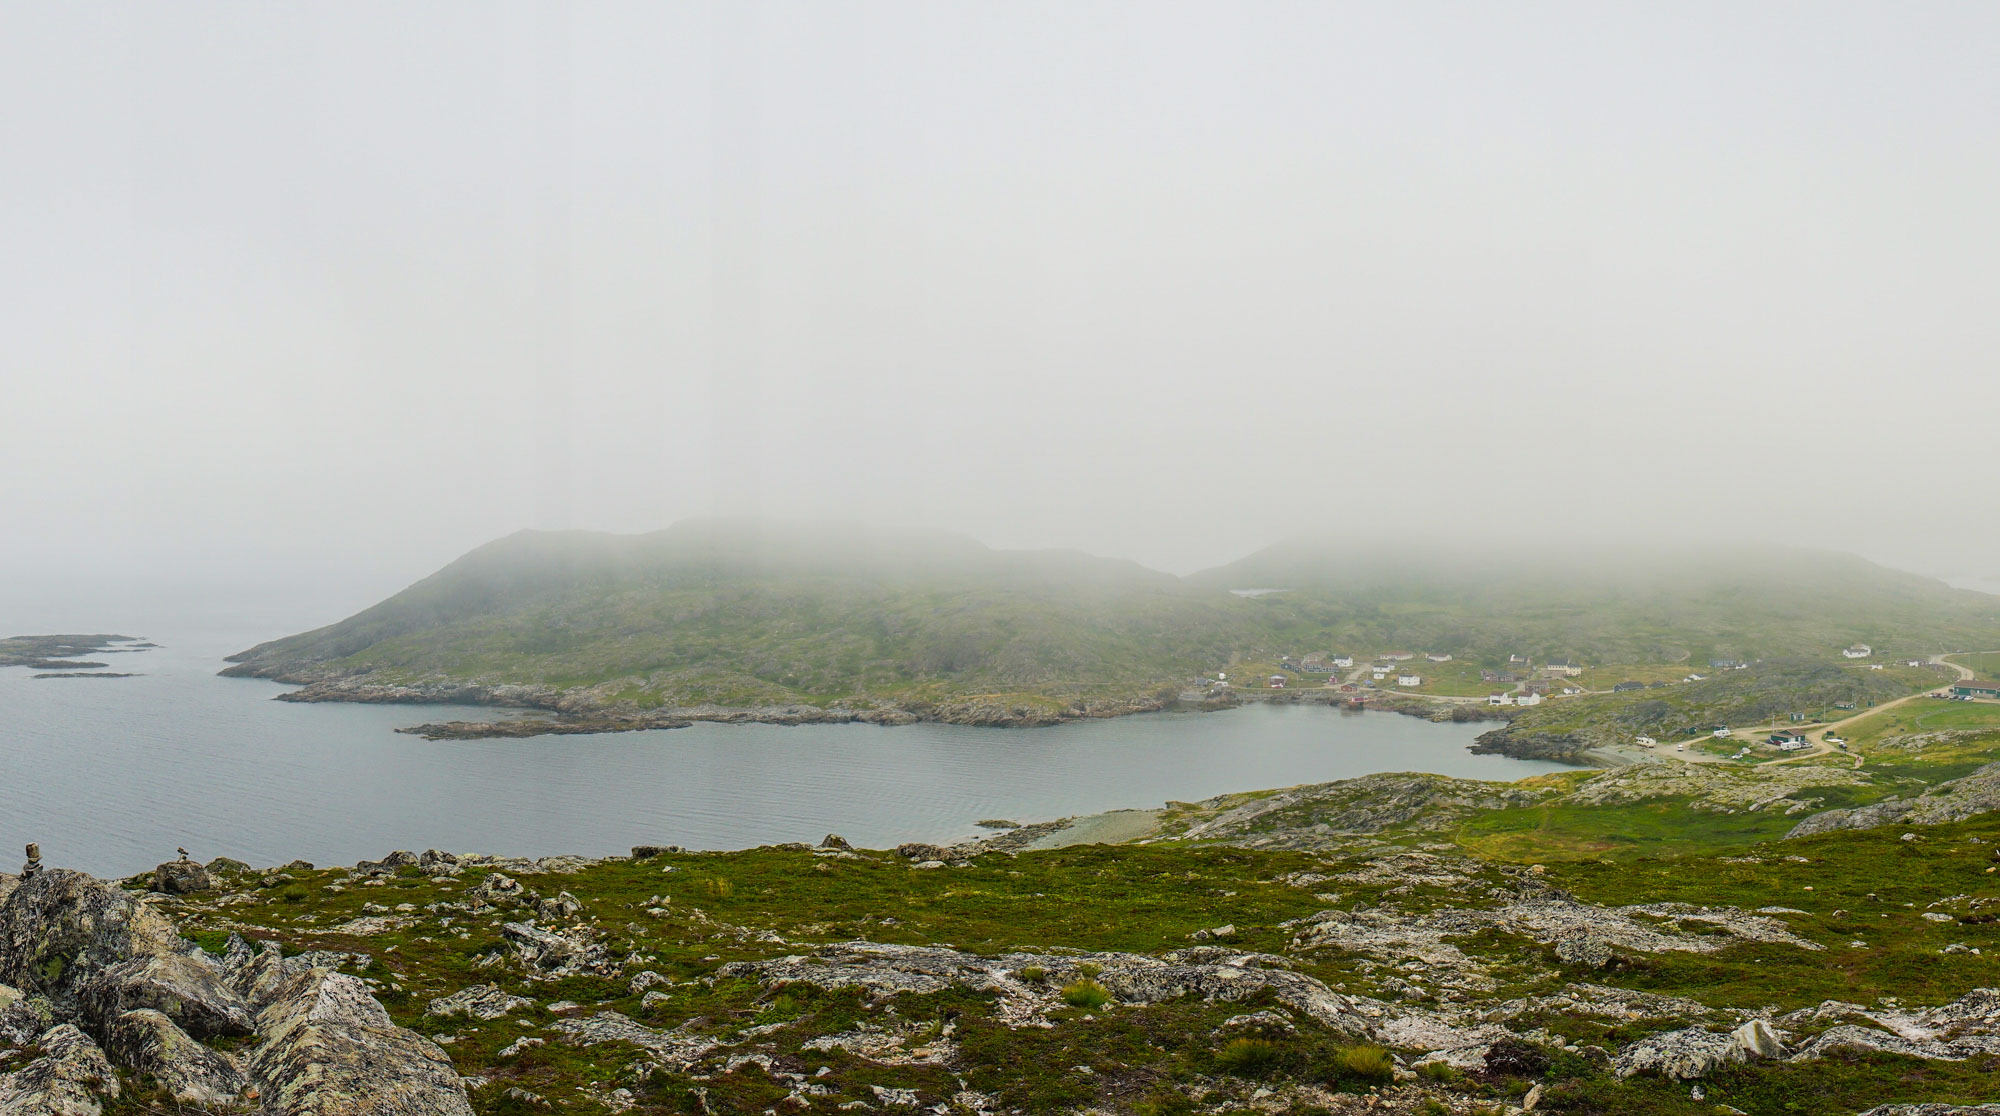 Bay off the to side of Brimstone head